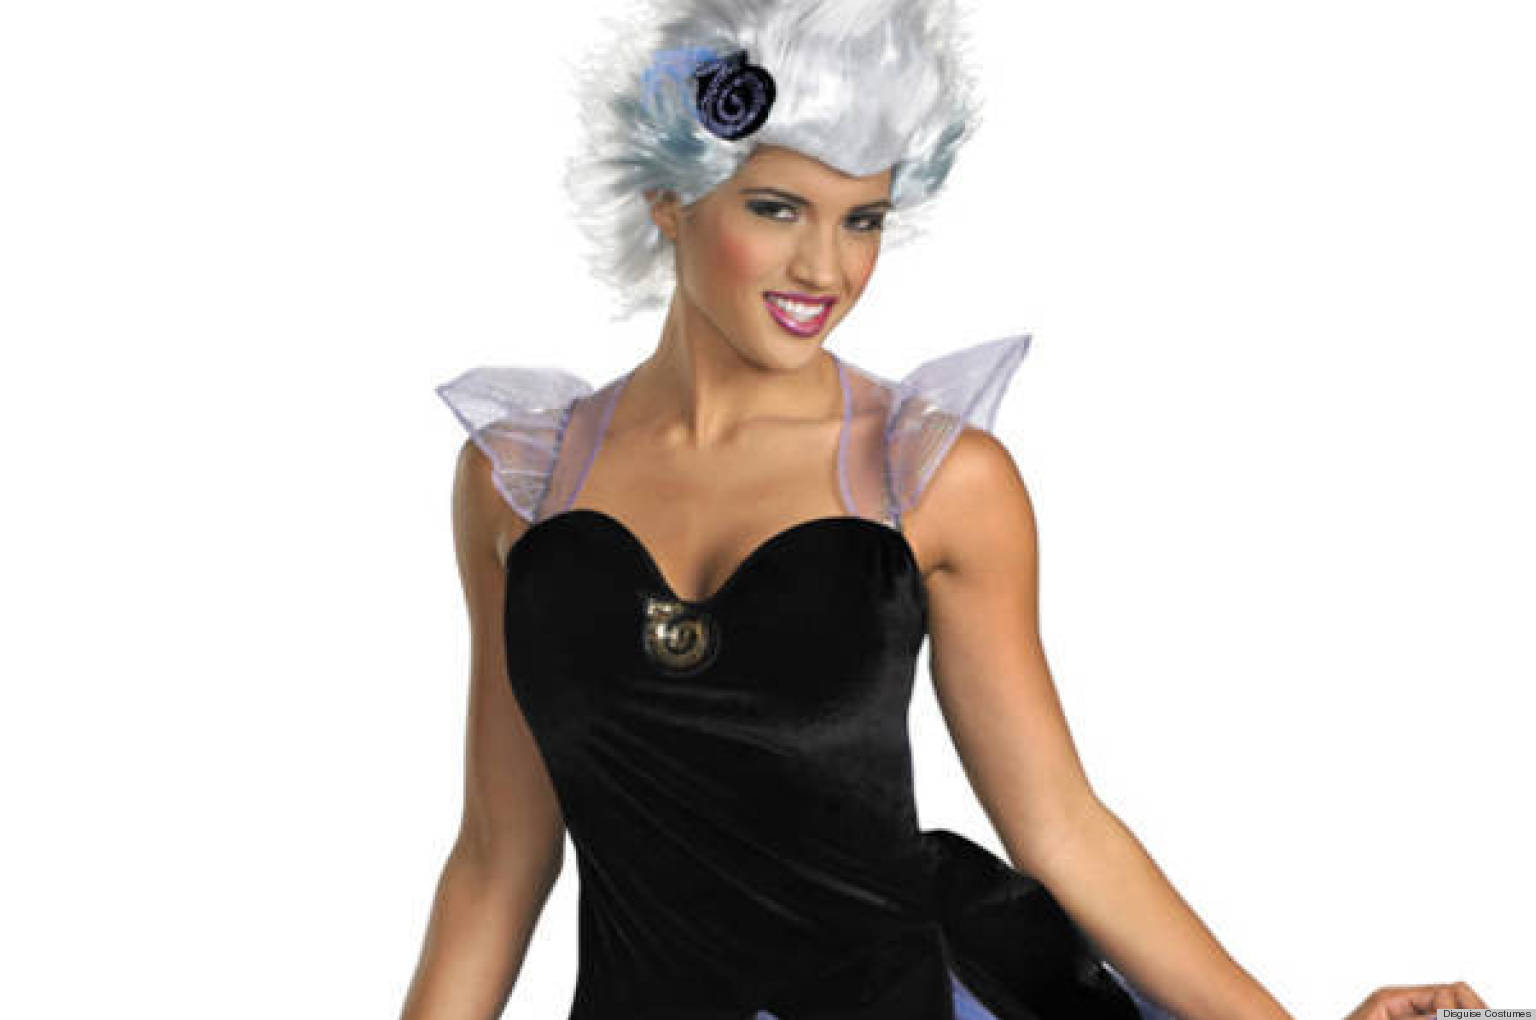 Sassy Ursula' Halloween Costume Sparks Controversy Over Plus Sizes ...